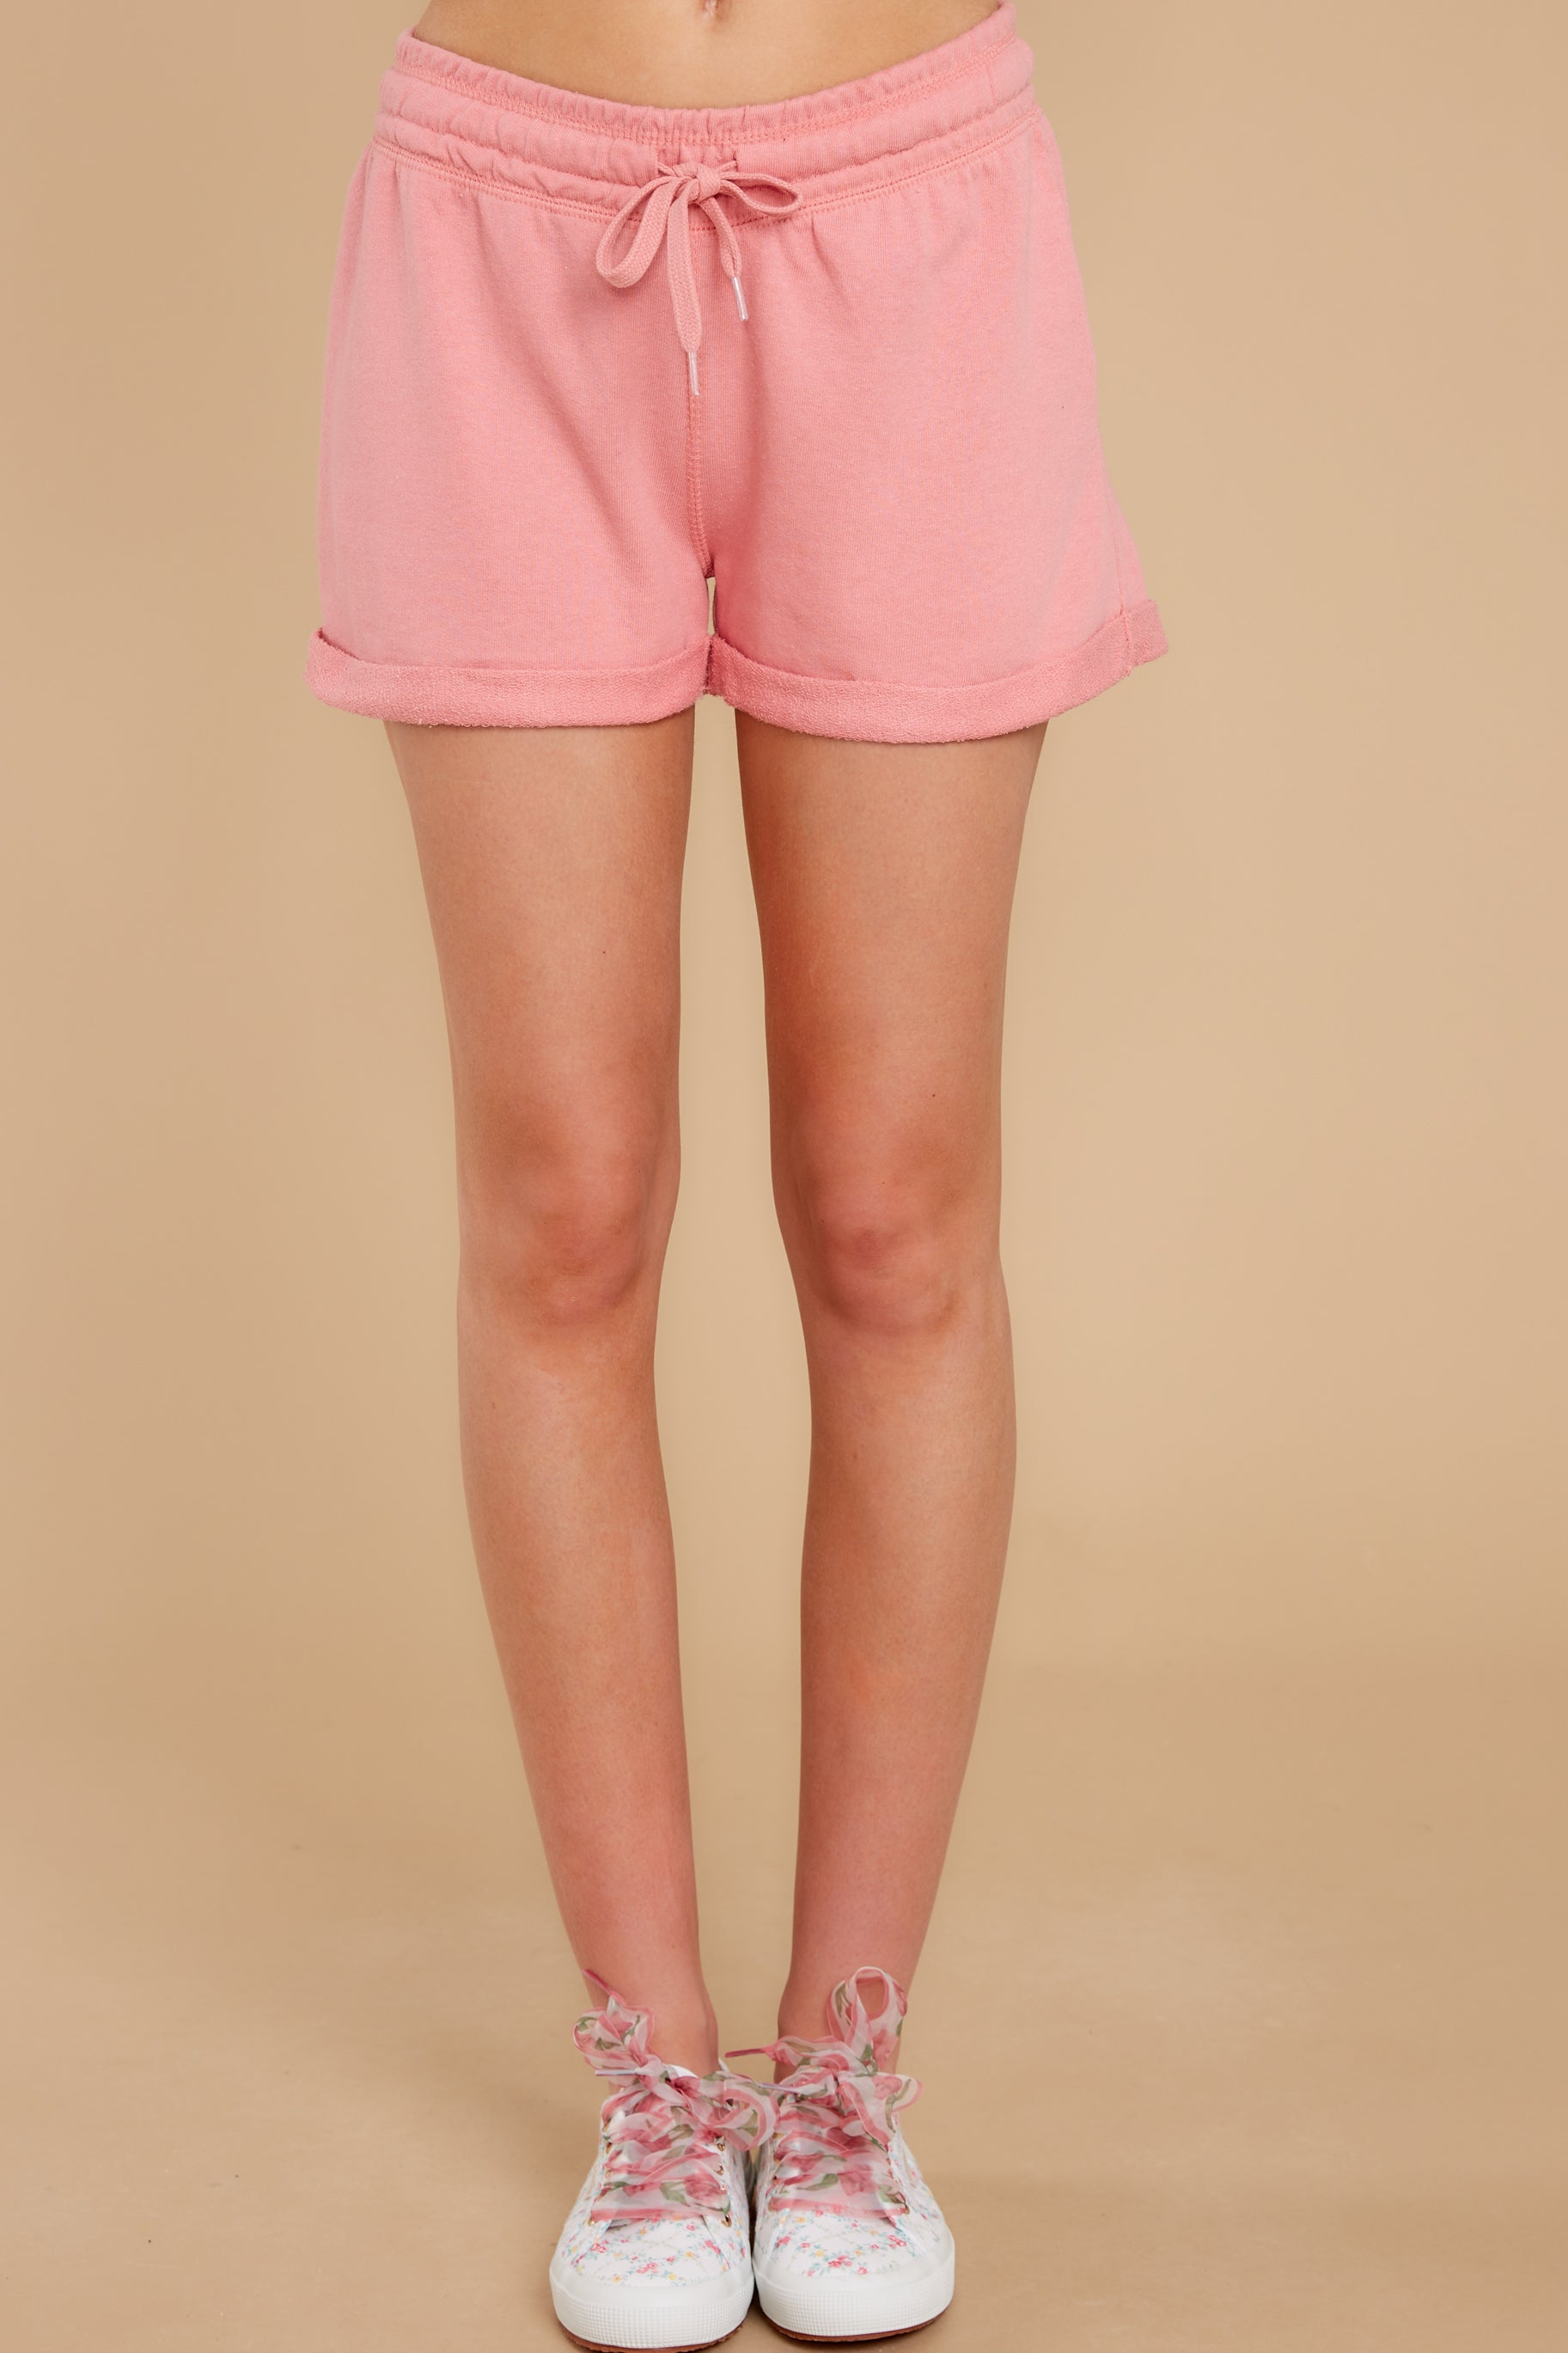 2 Such A Sweetheart Rose Pink Shorts at reddress.com